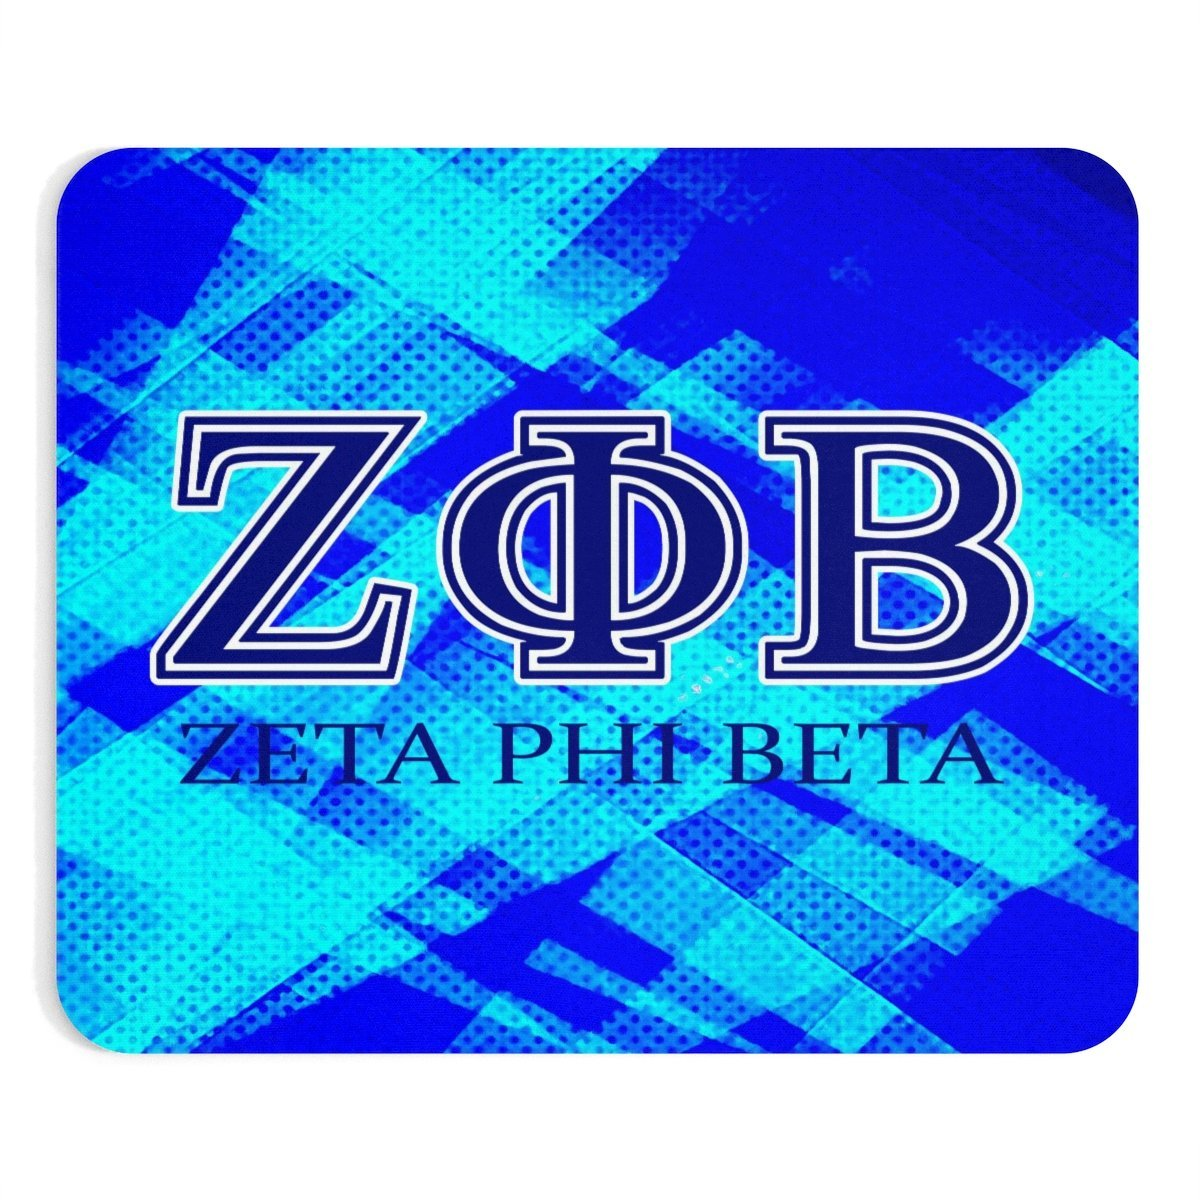 Zeta phi beta unique greek store zeta phi beta symbol mousepad biocorpaavc Images